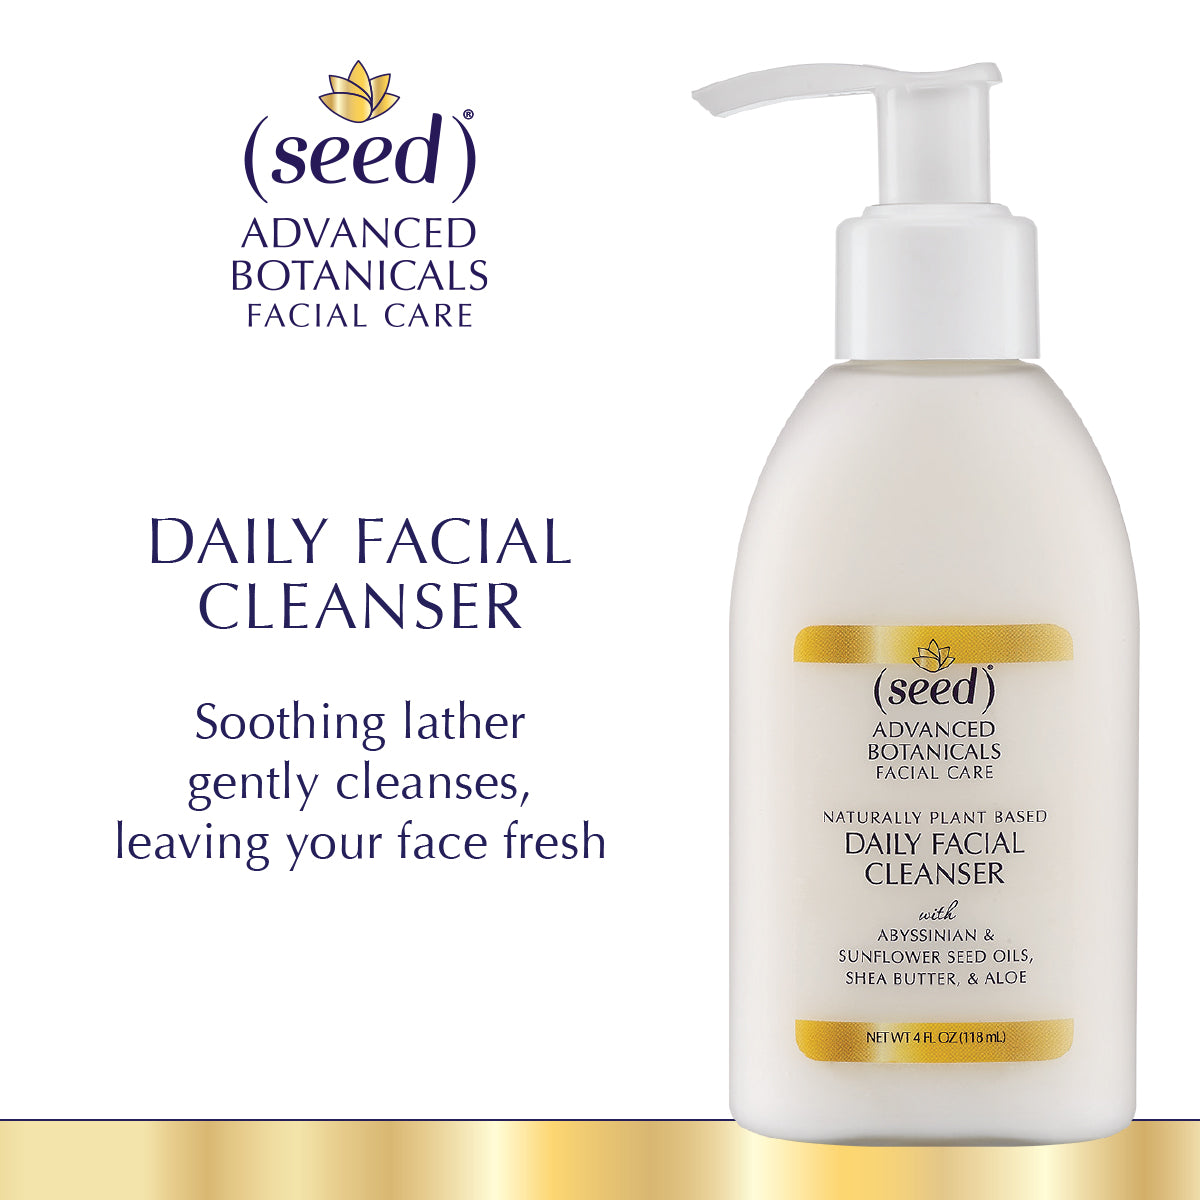 Seed Advanced Botanicals Face Wash Cleanser Benefits